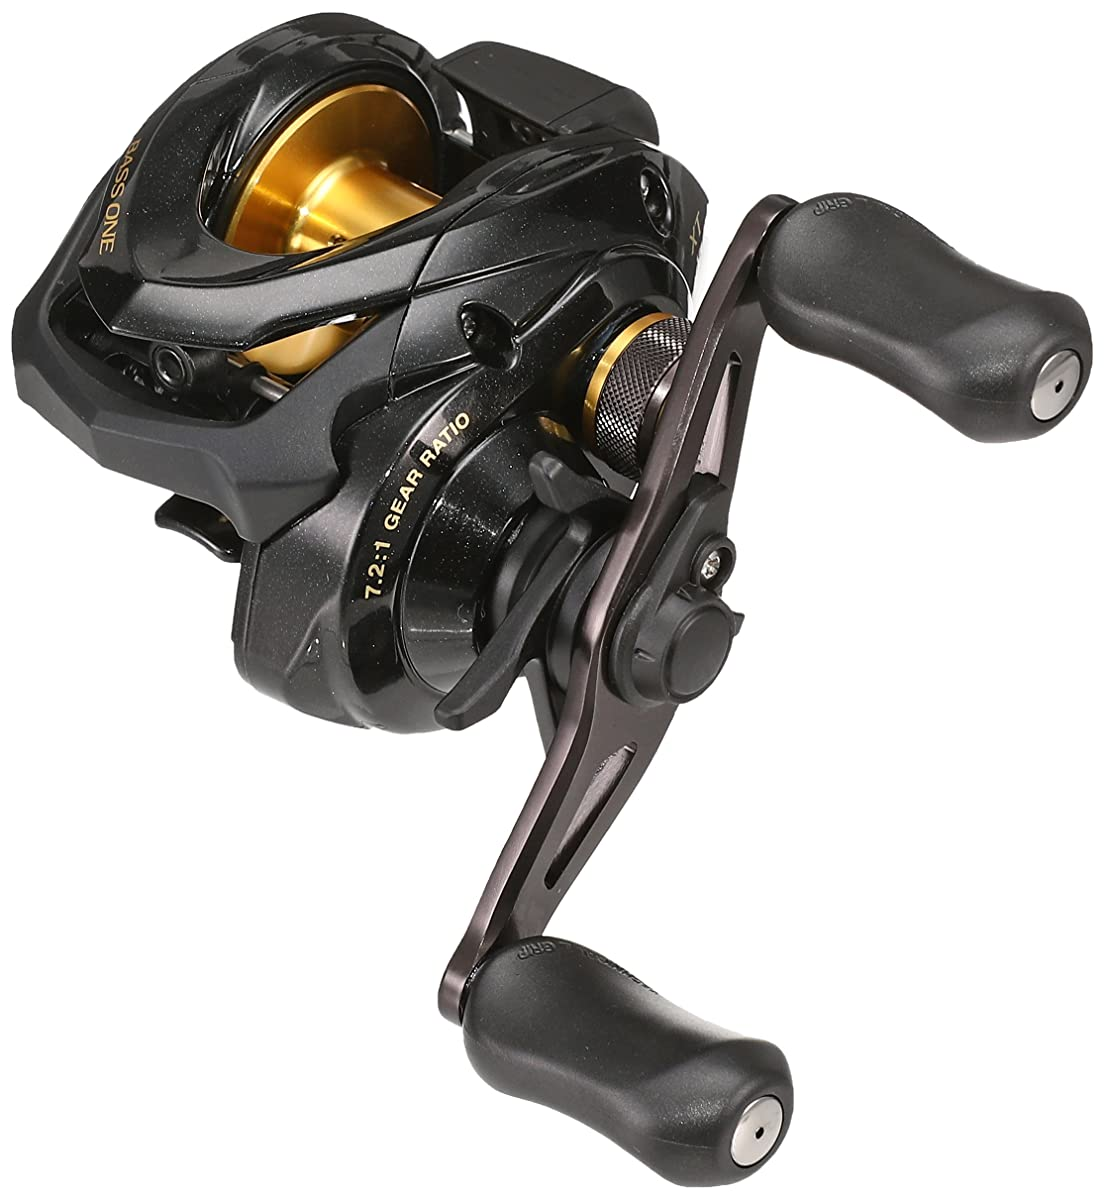 Shimano Bass One XT RIGHT From Japan